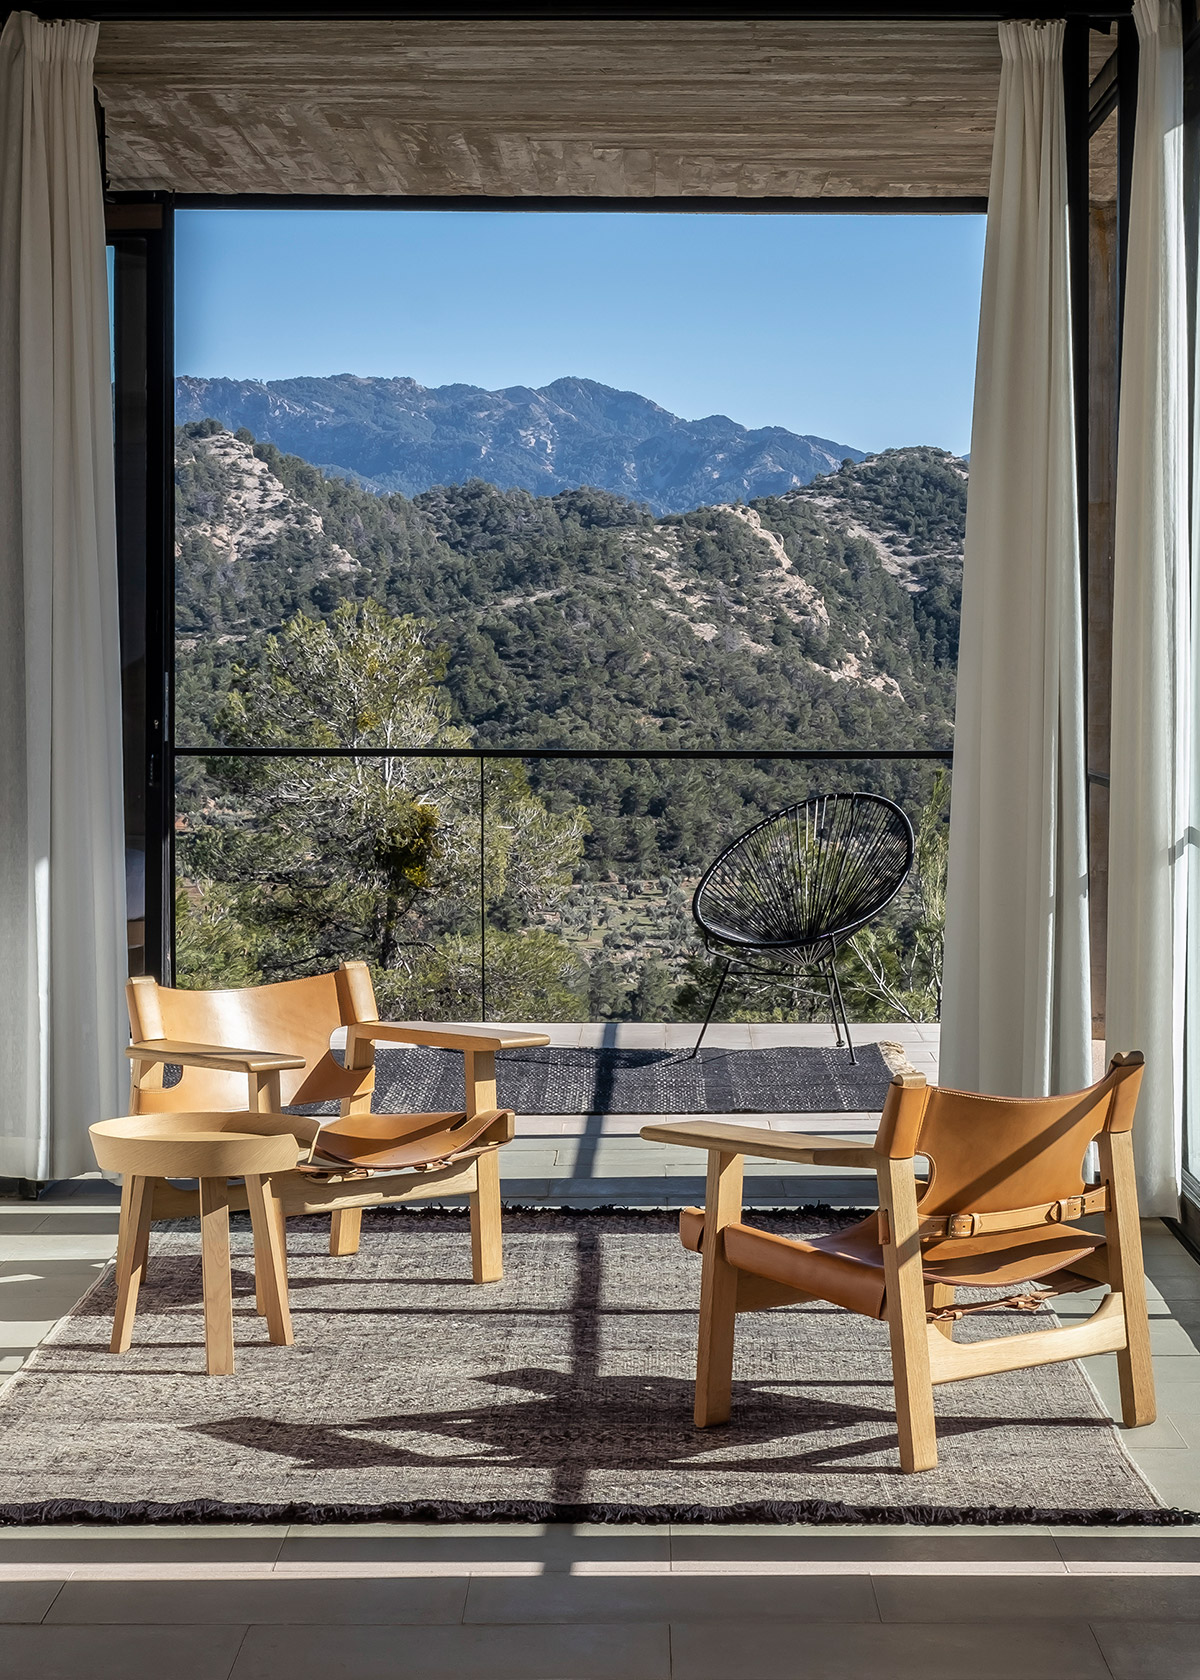 Telares rug and Spanish chair in modern concrete room with view of mountains